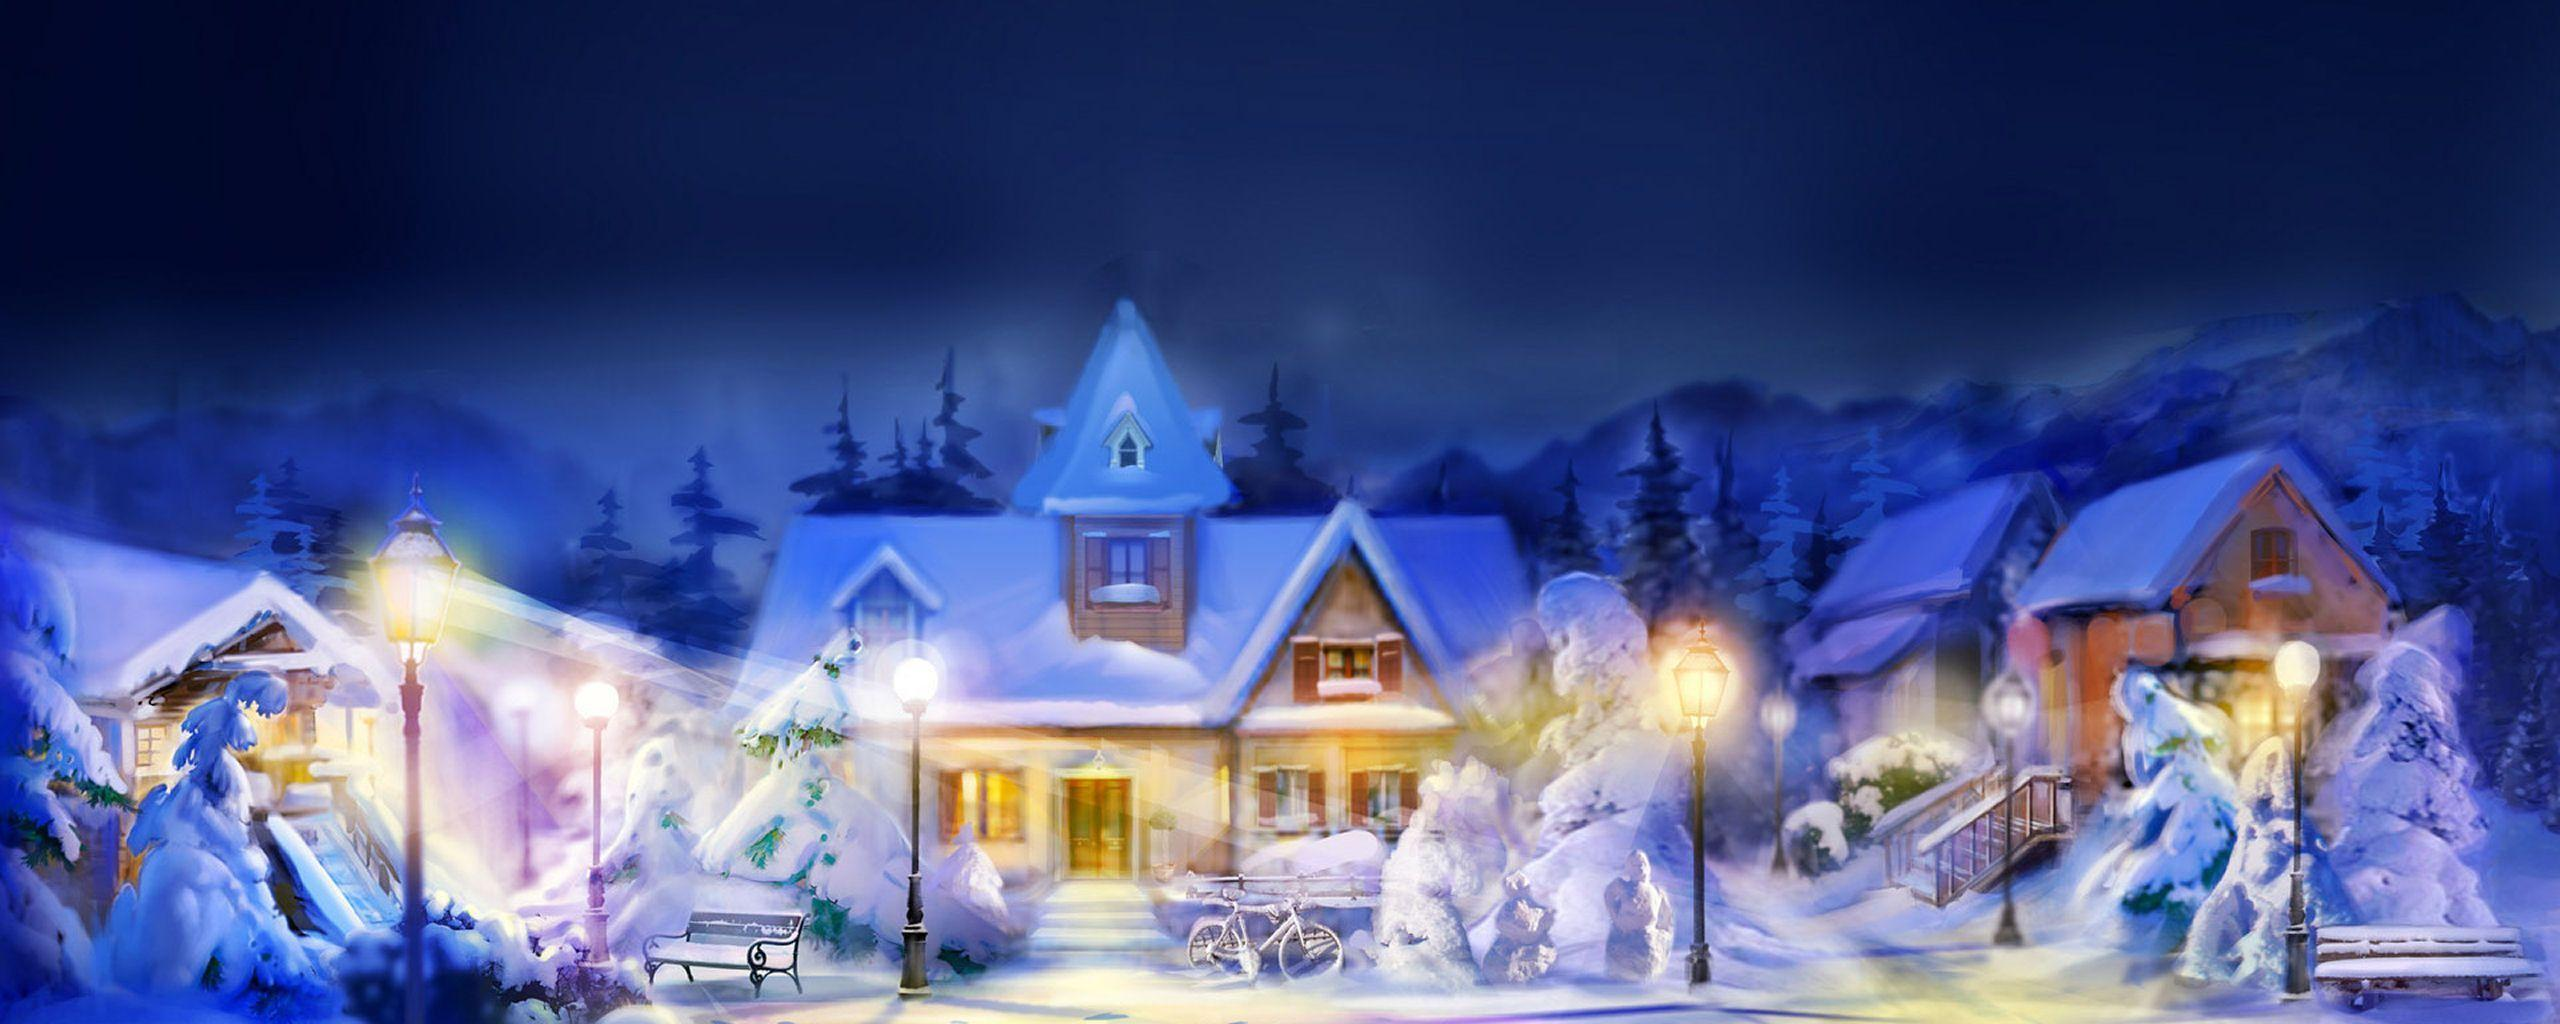 Christmas Screen Backgrounds - Wallpaper Cave